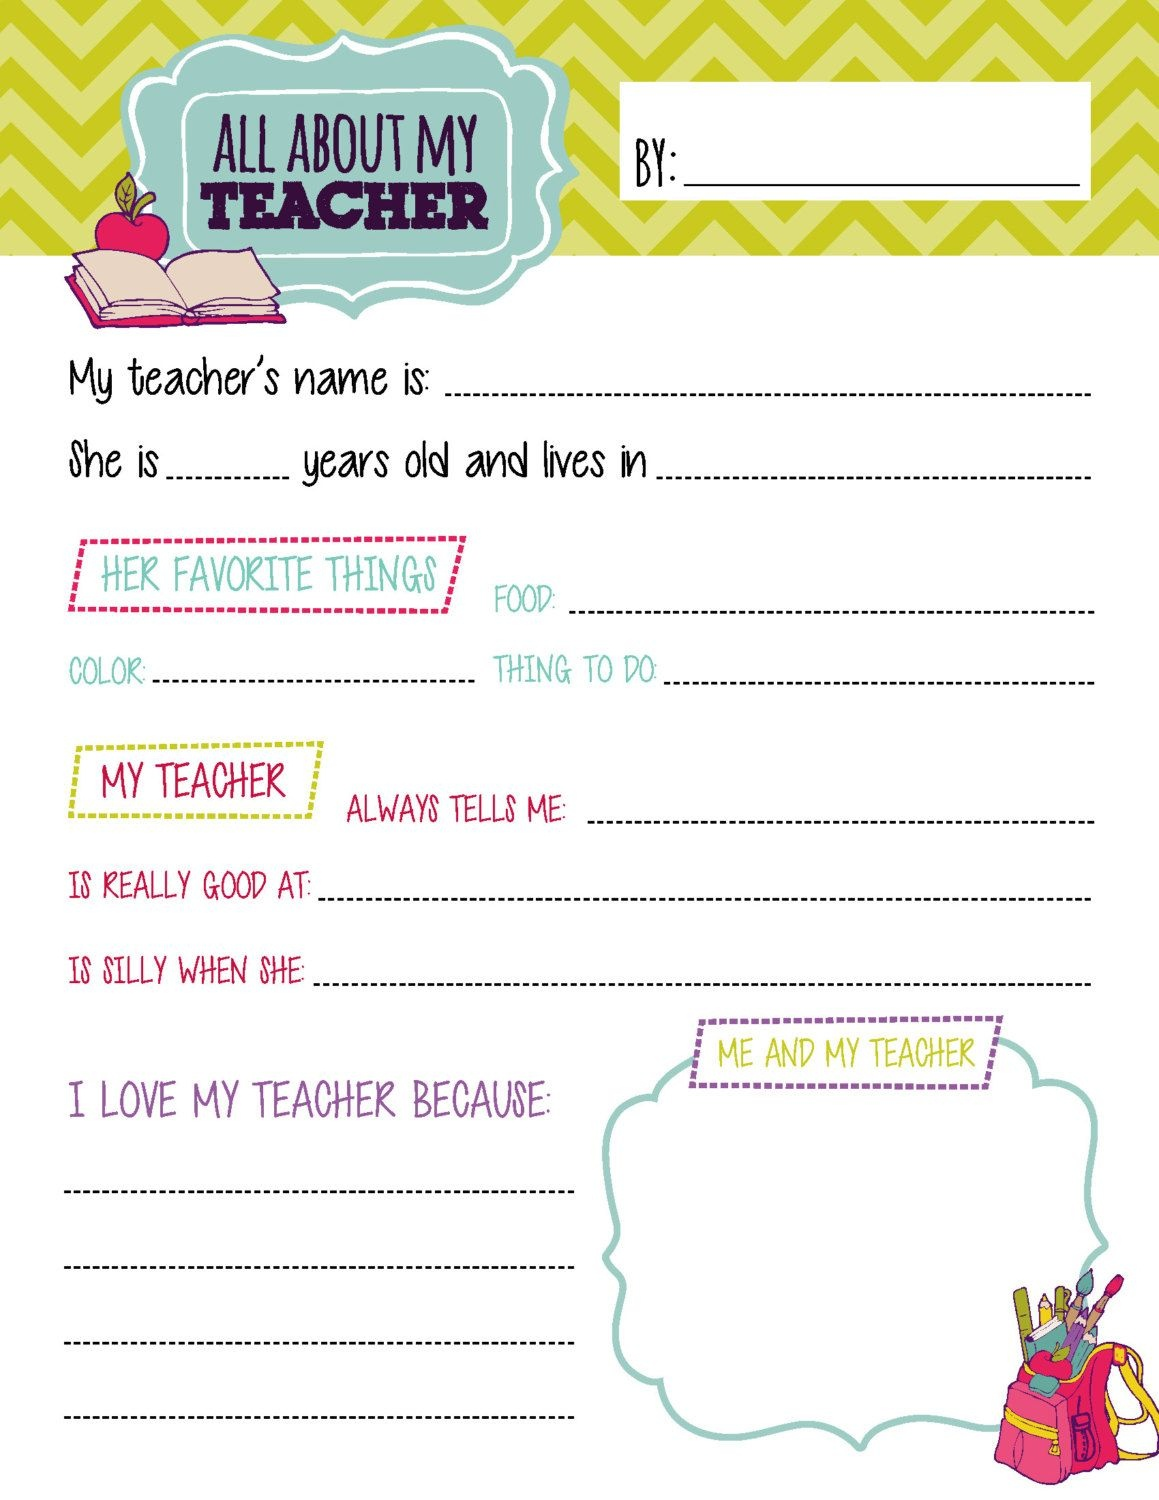 All About My Teacher Questionnaire Printablestealolivedesigns - All About My Teacher Free Printable